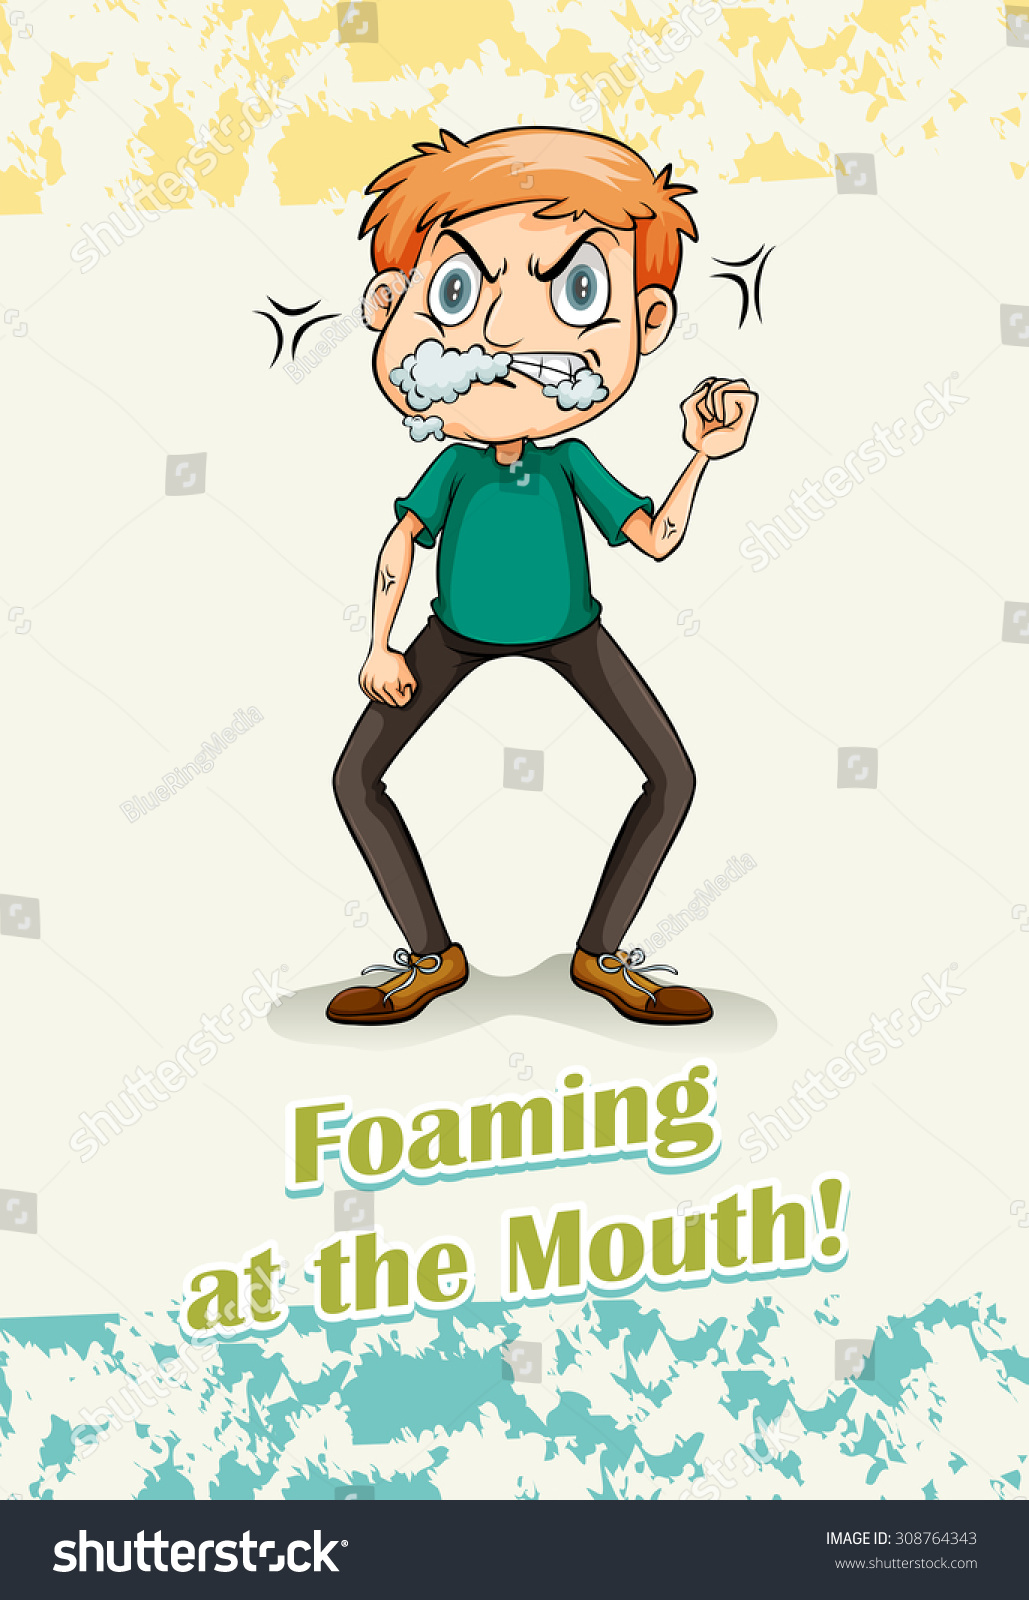 Idiom Foaming At The Mouth Illustration - 308764343 ...